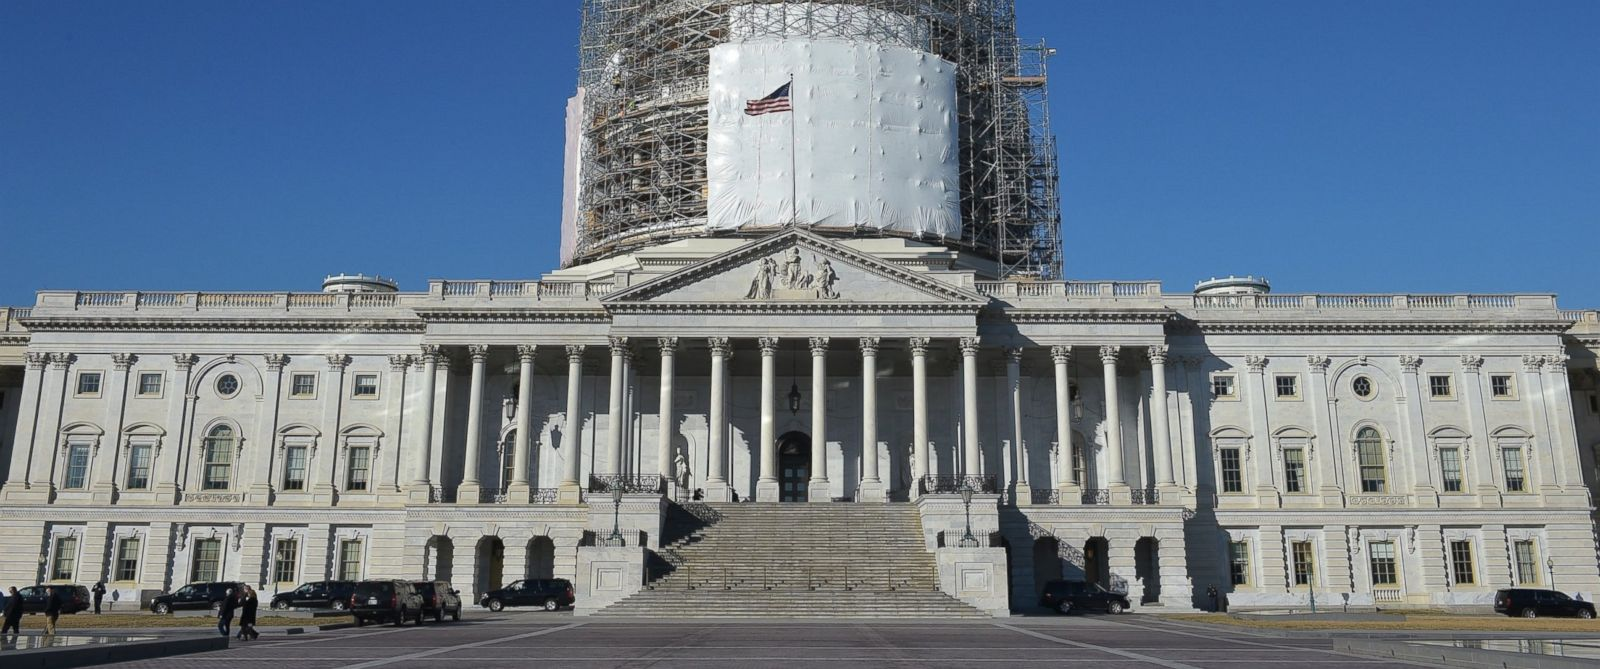 PHOTO: The U.S. Capitol is shown with its dome encased in scaffolding as it undergoes renovation in Washington, Feb. 11, 2015.